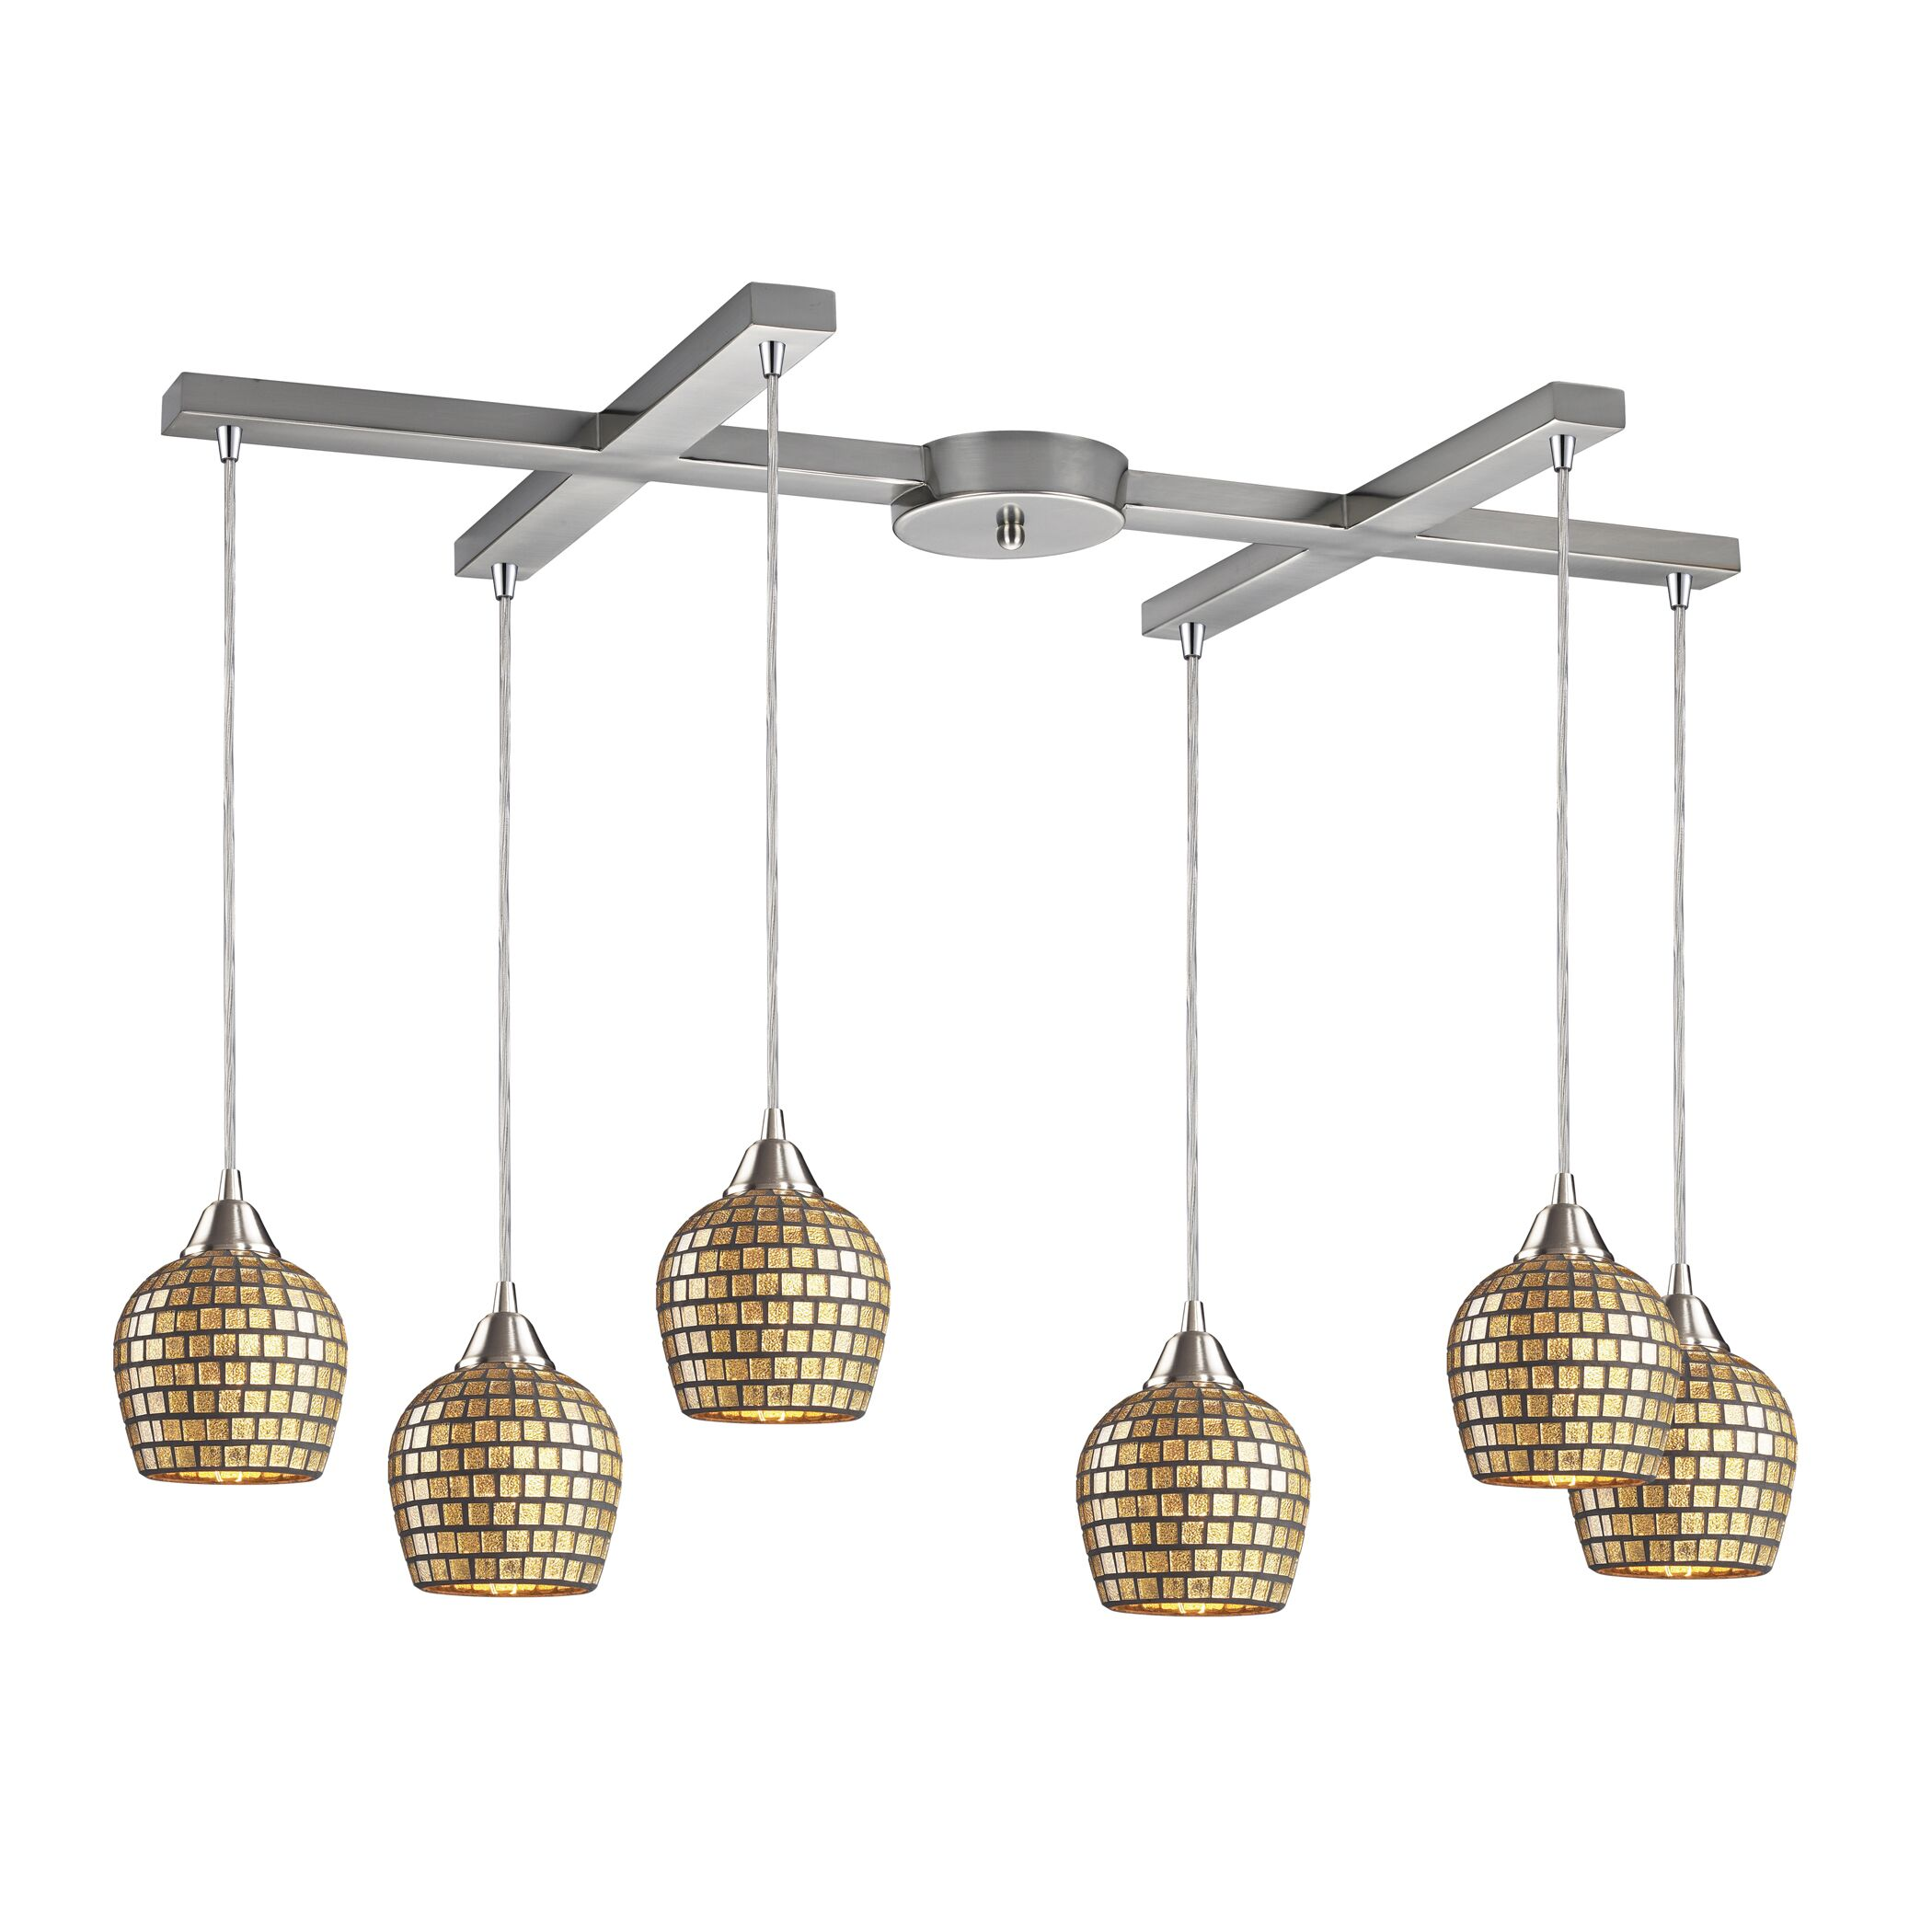 Roehampton Three Forks 6-Light Cluster Pendant Finish: Satin Nickel and Gold Mosaic Glass